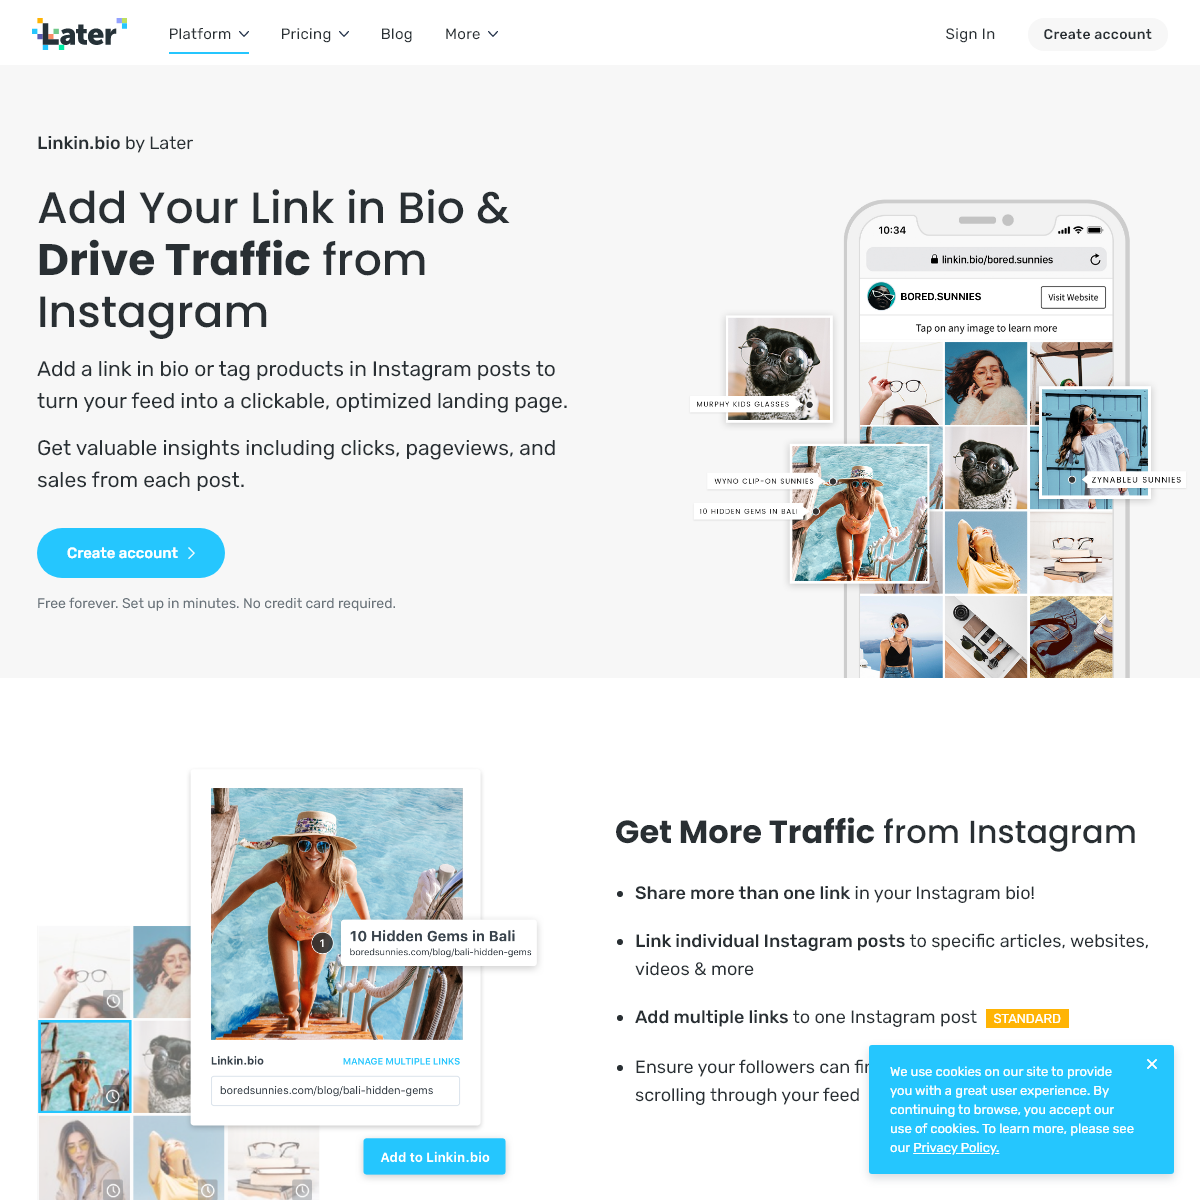 Linkin.bio by Later- Drive Traffic and Revenue with Link in Bio